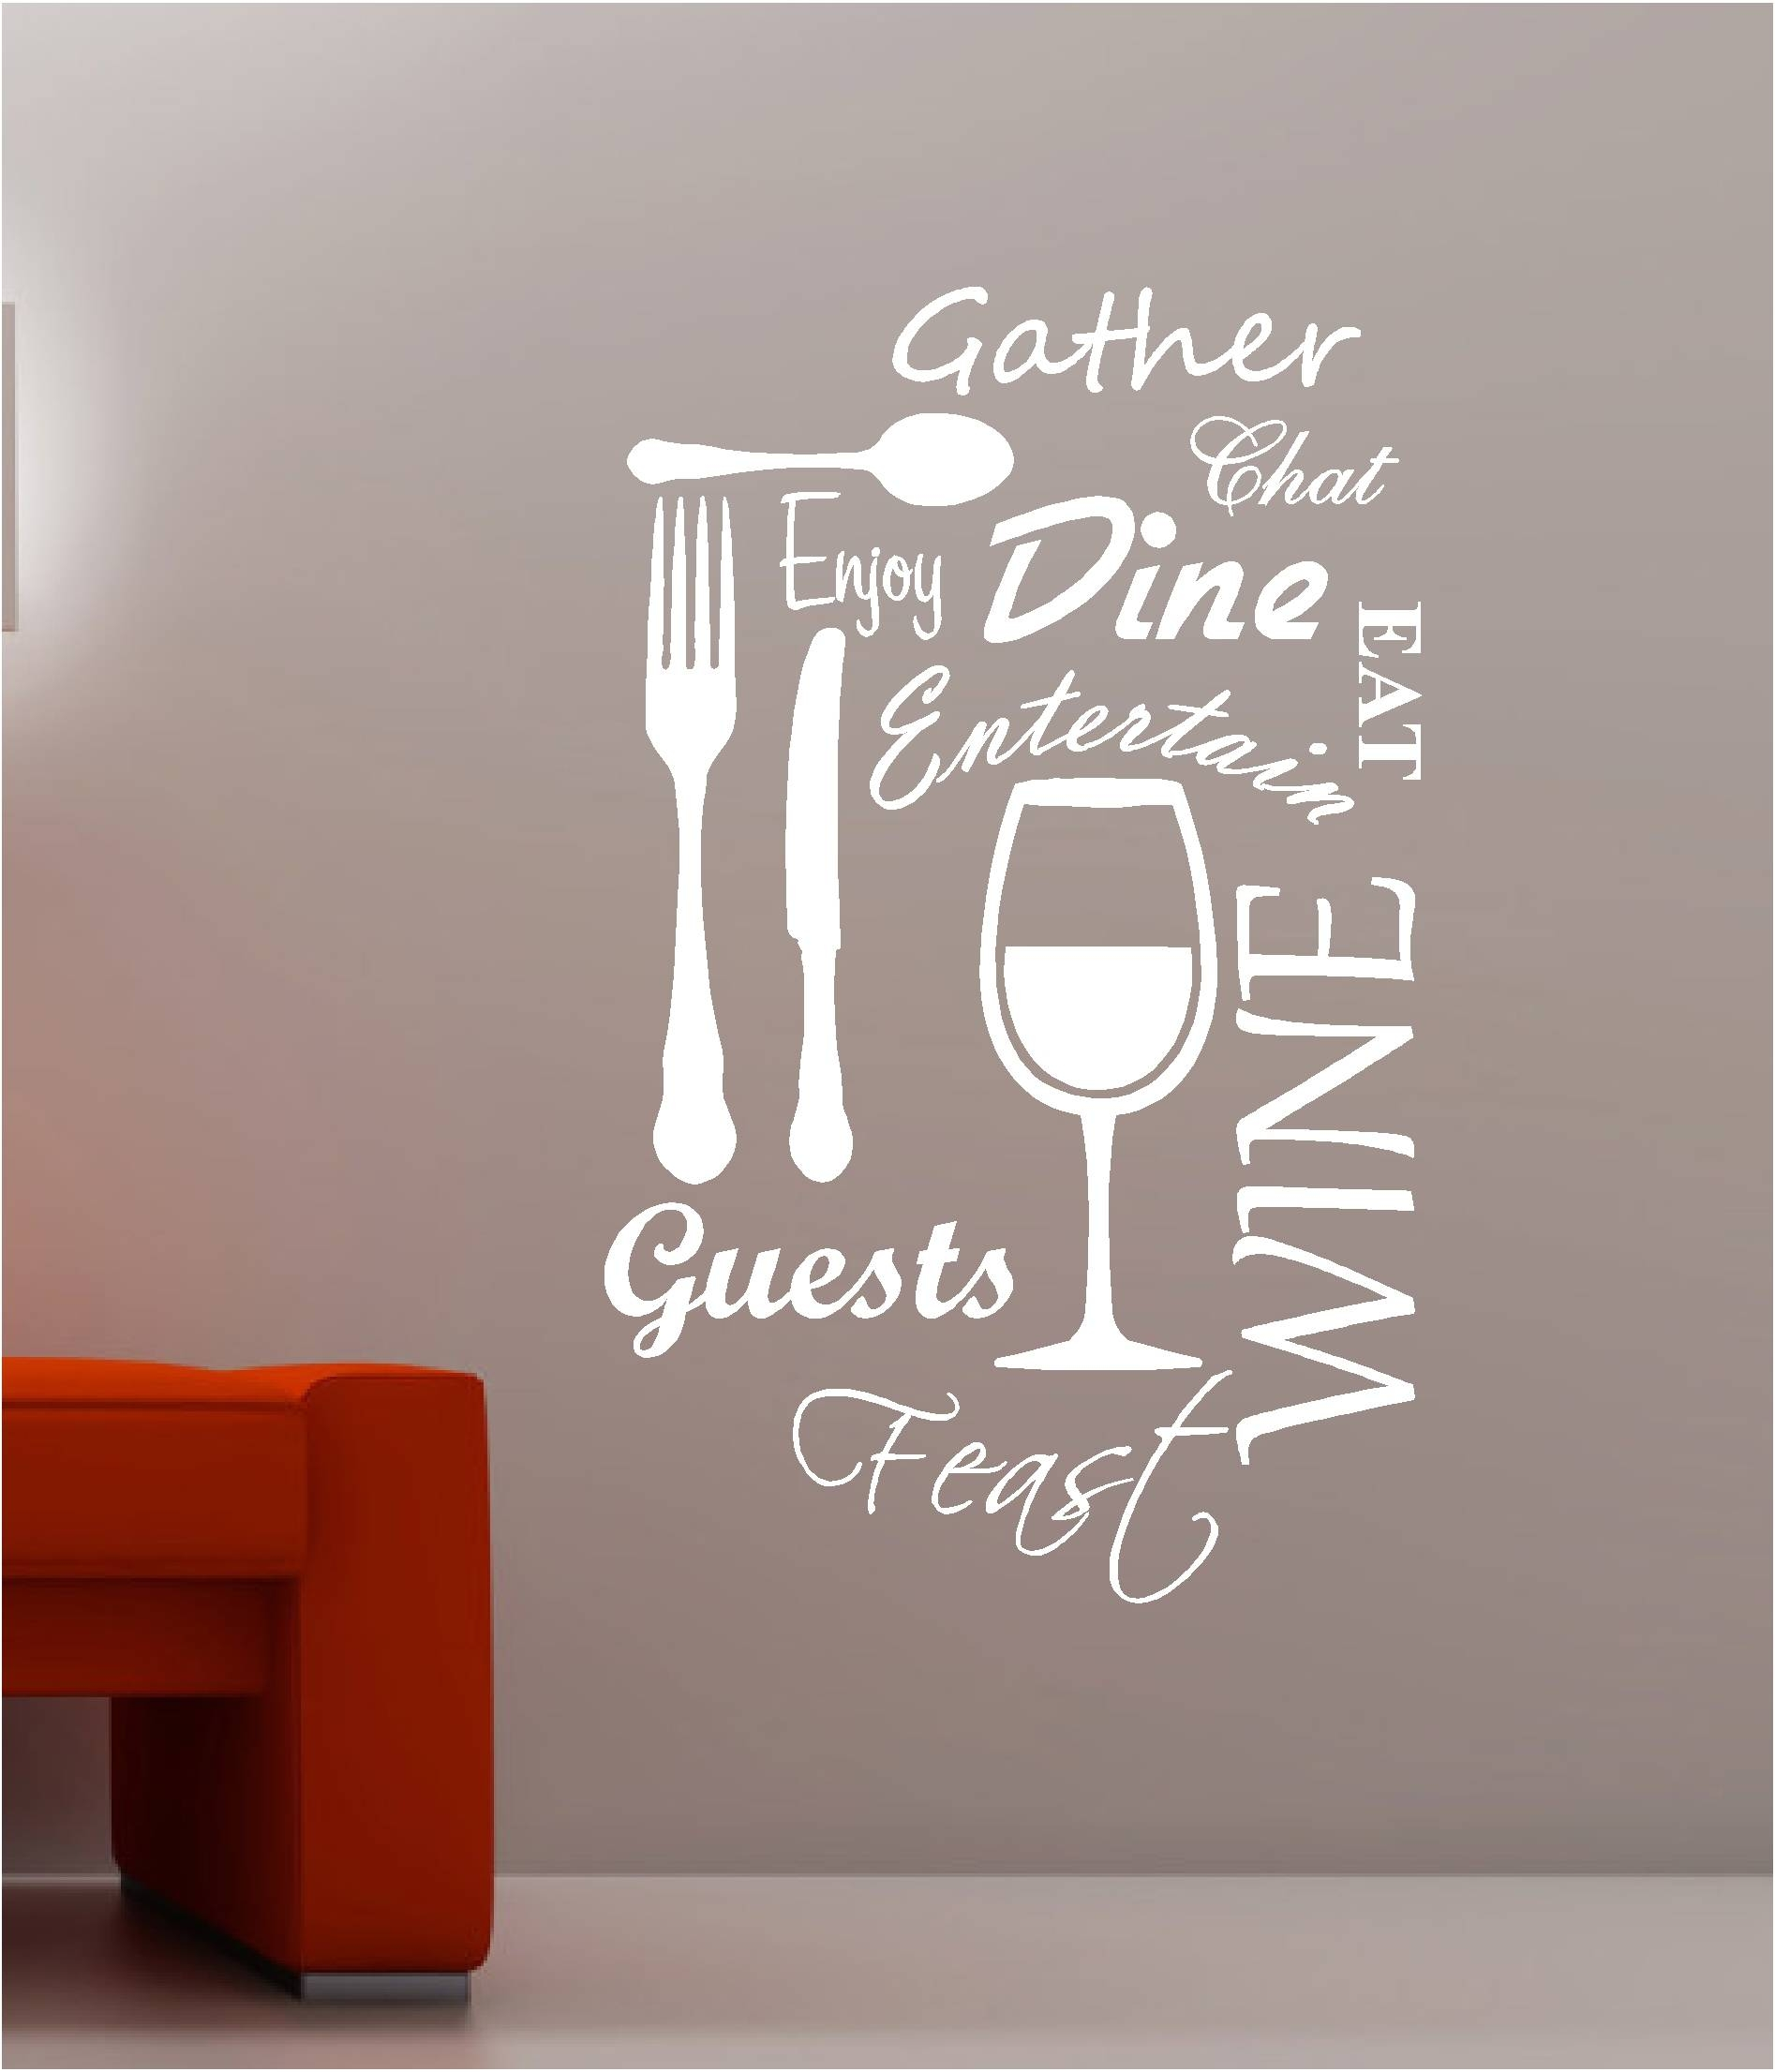 Kitchen : Wall Decor Affordable Wall Art Wall Decor Paintings With Regard To Newest Graphic Design Wall Art (View 13 of 20)